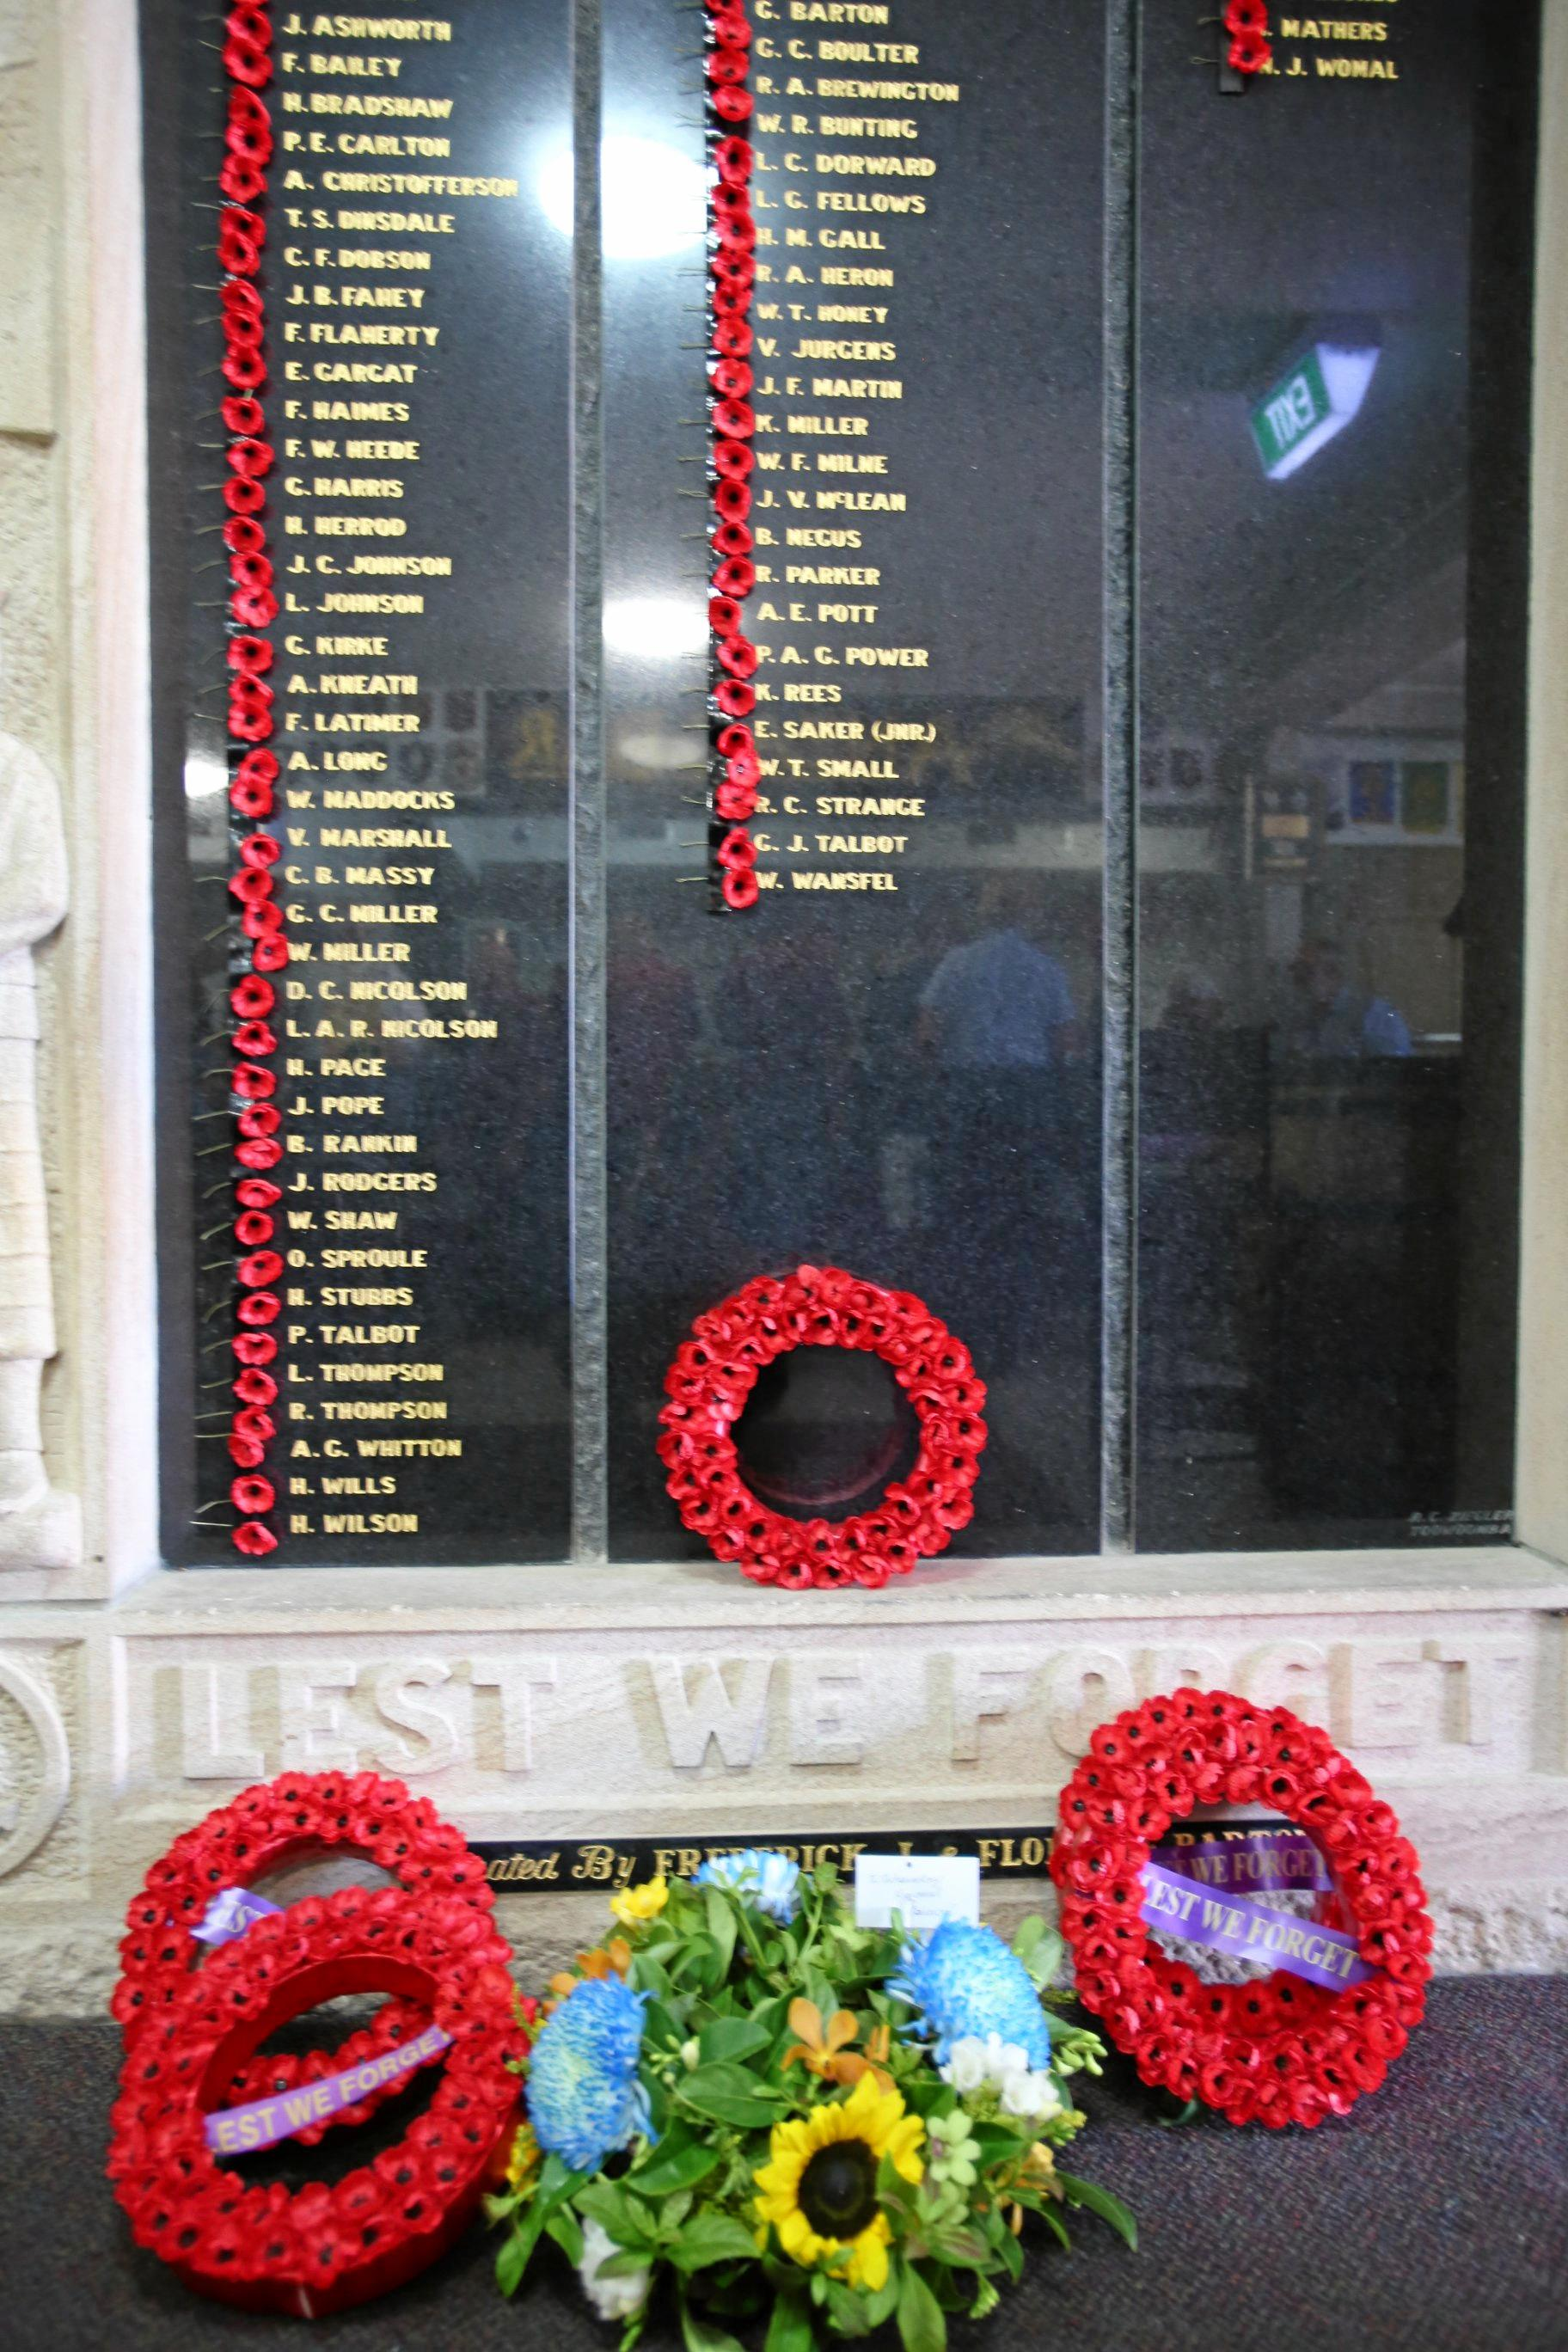 The Bowen RSL wall of remembrance.